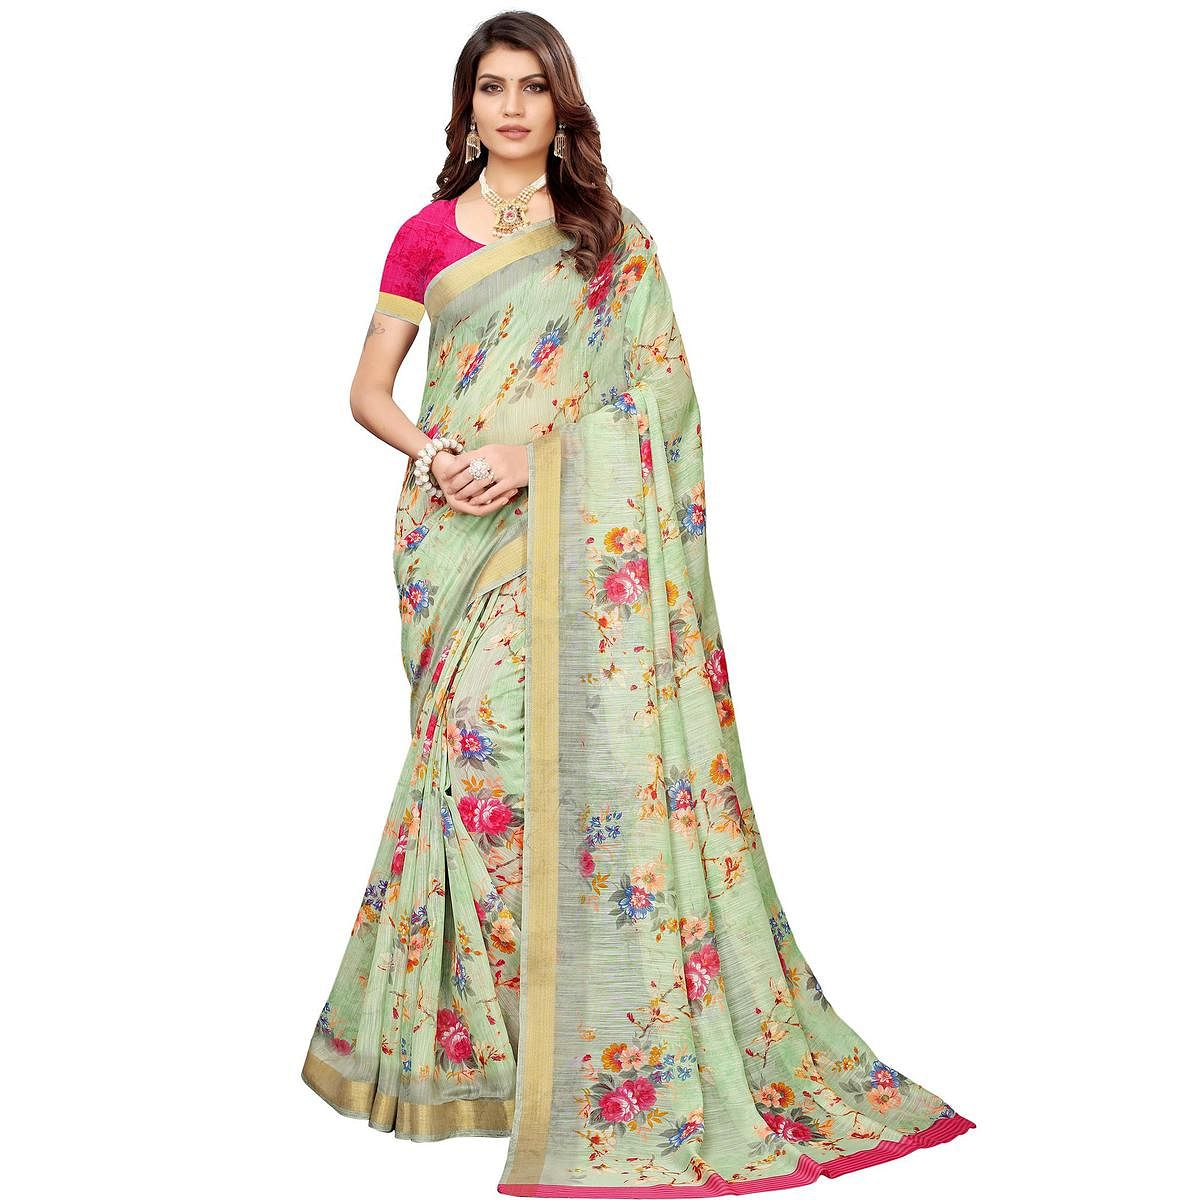 Gleaming Pastel Green Colored Casual Printed Linen Saree